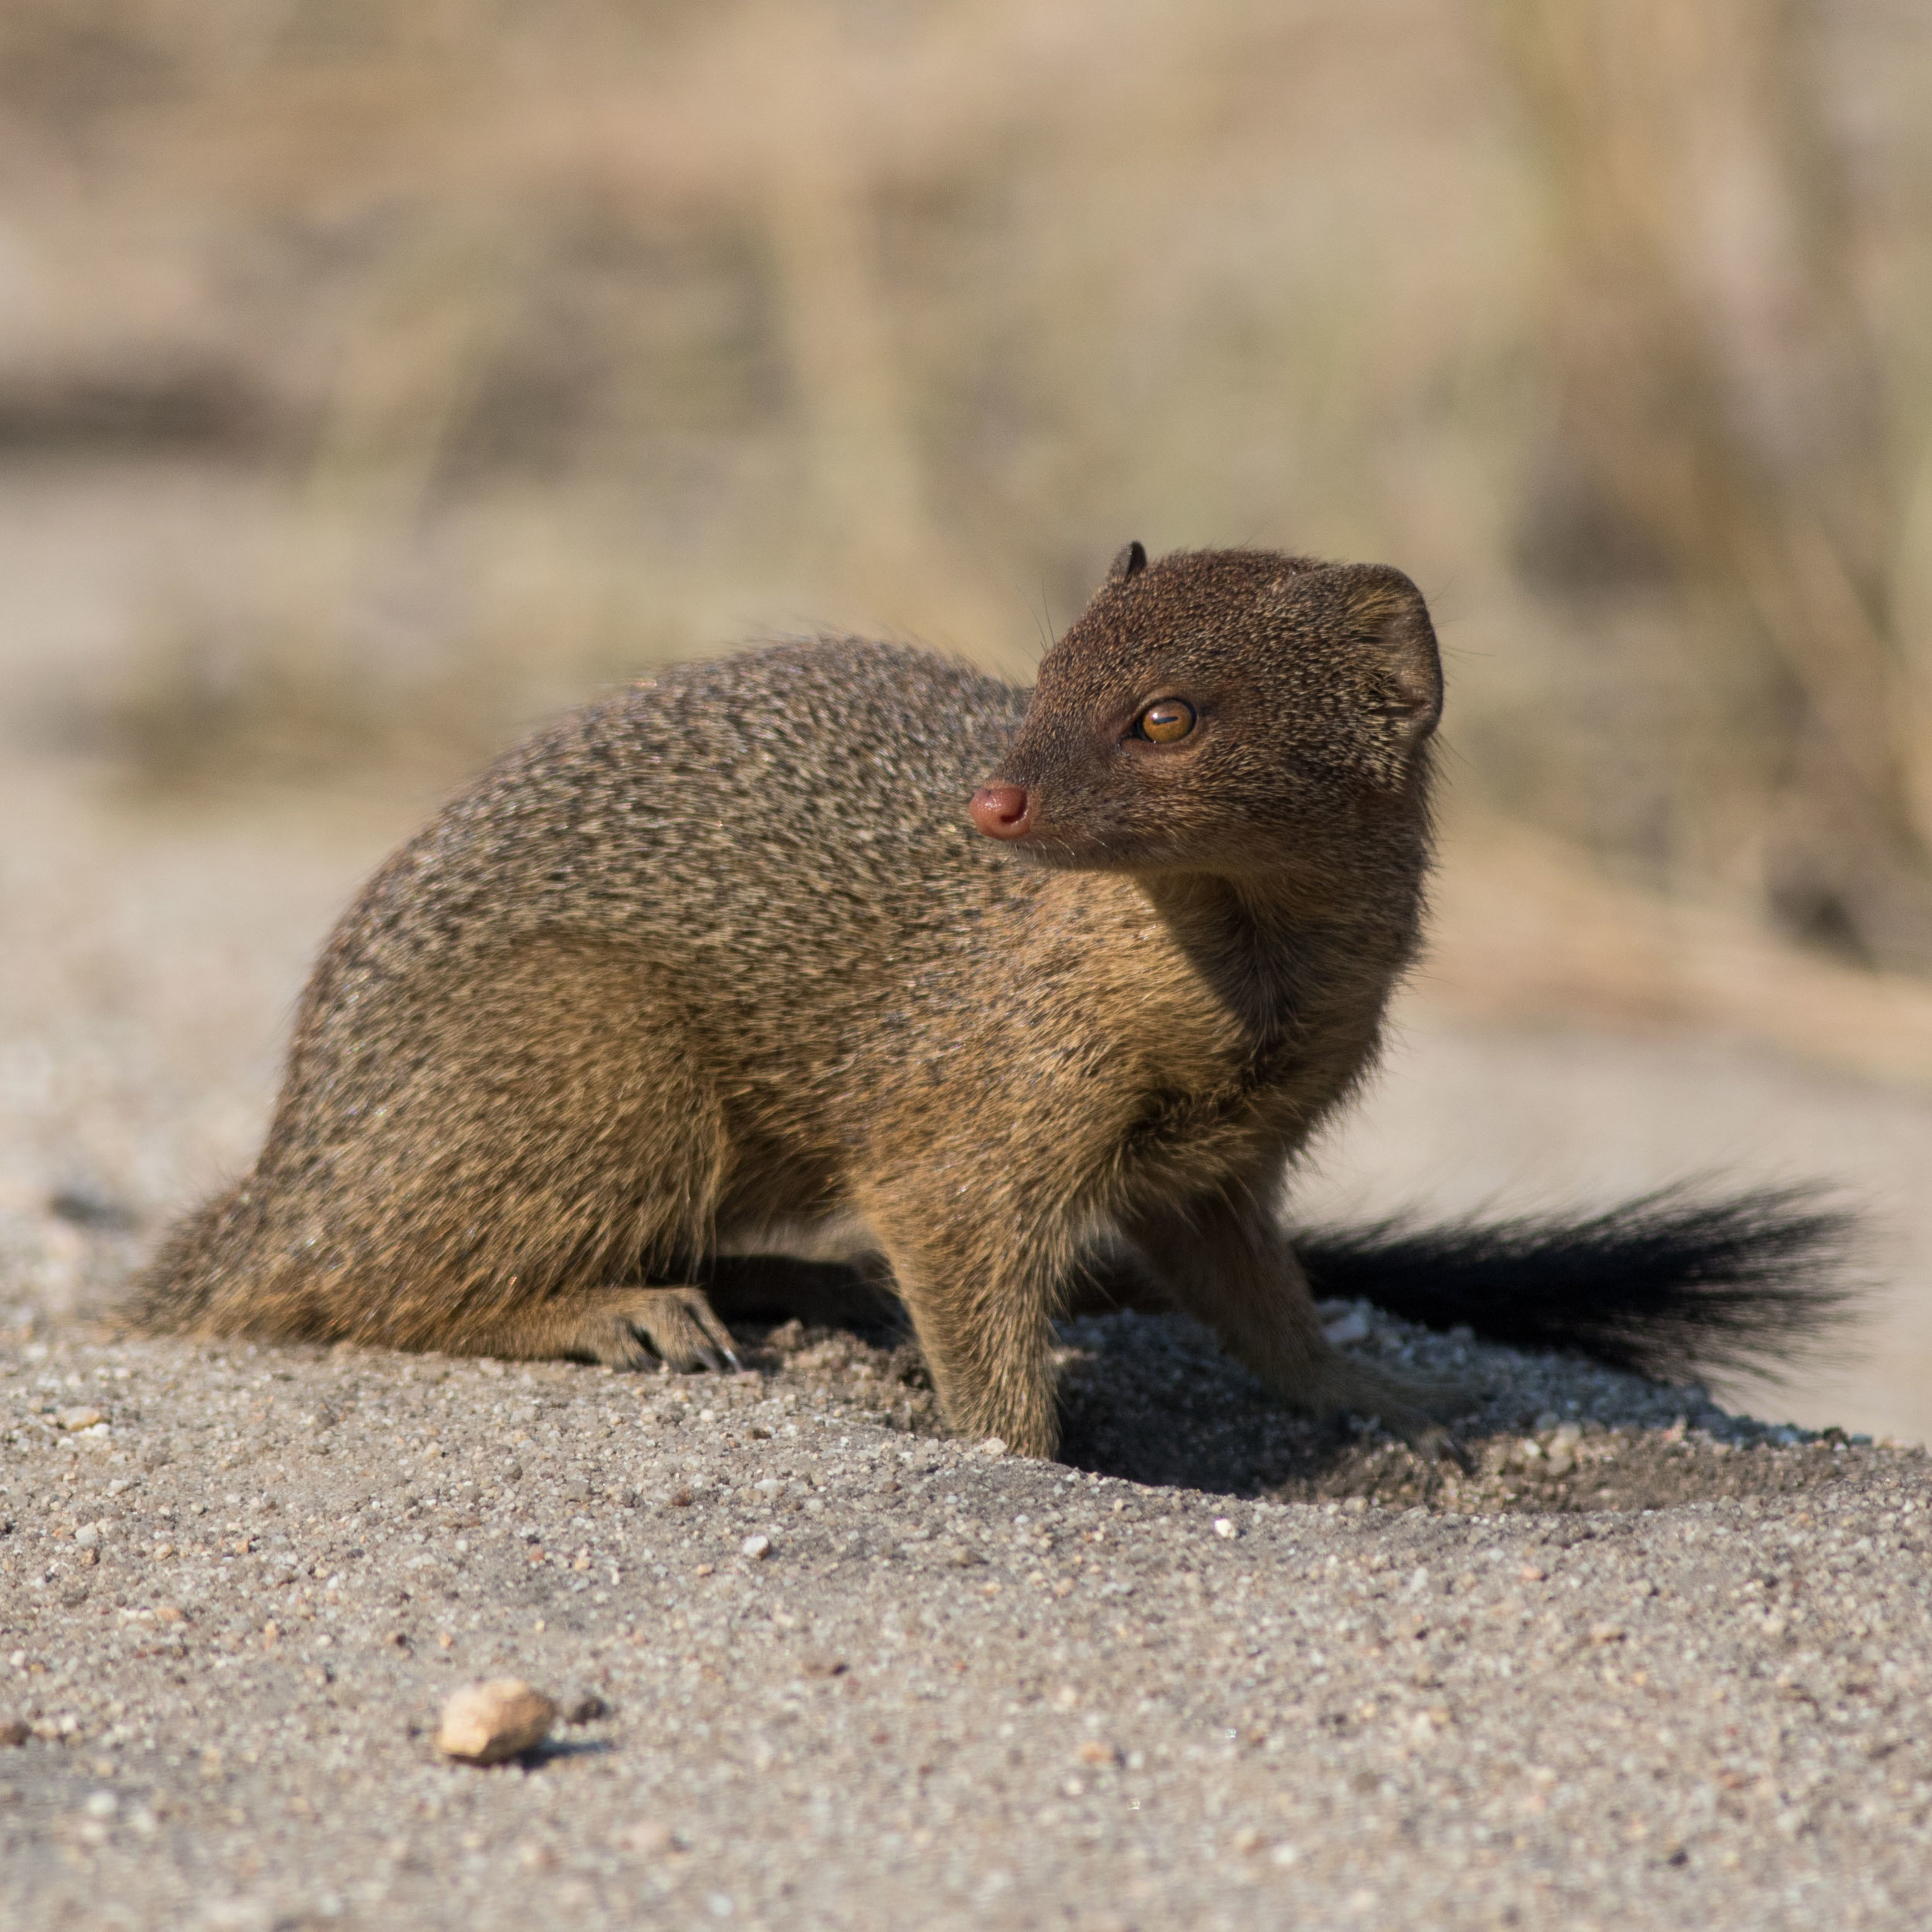 An adult slender mongoose checks his surrounding before entering the burrow in front of it.